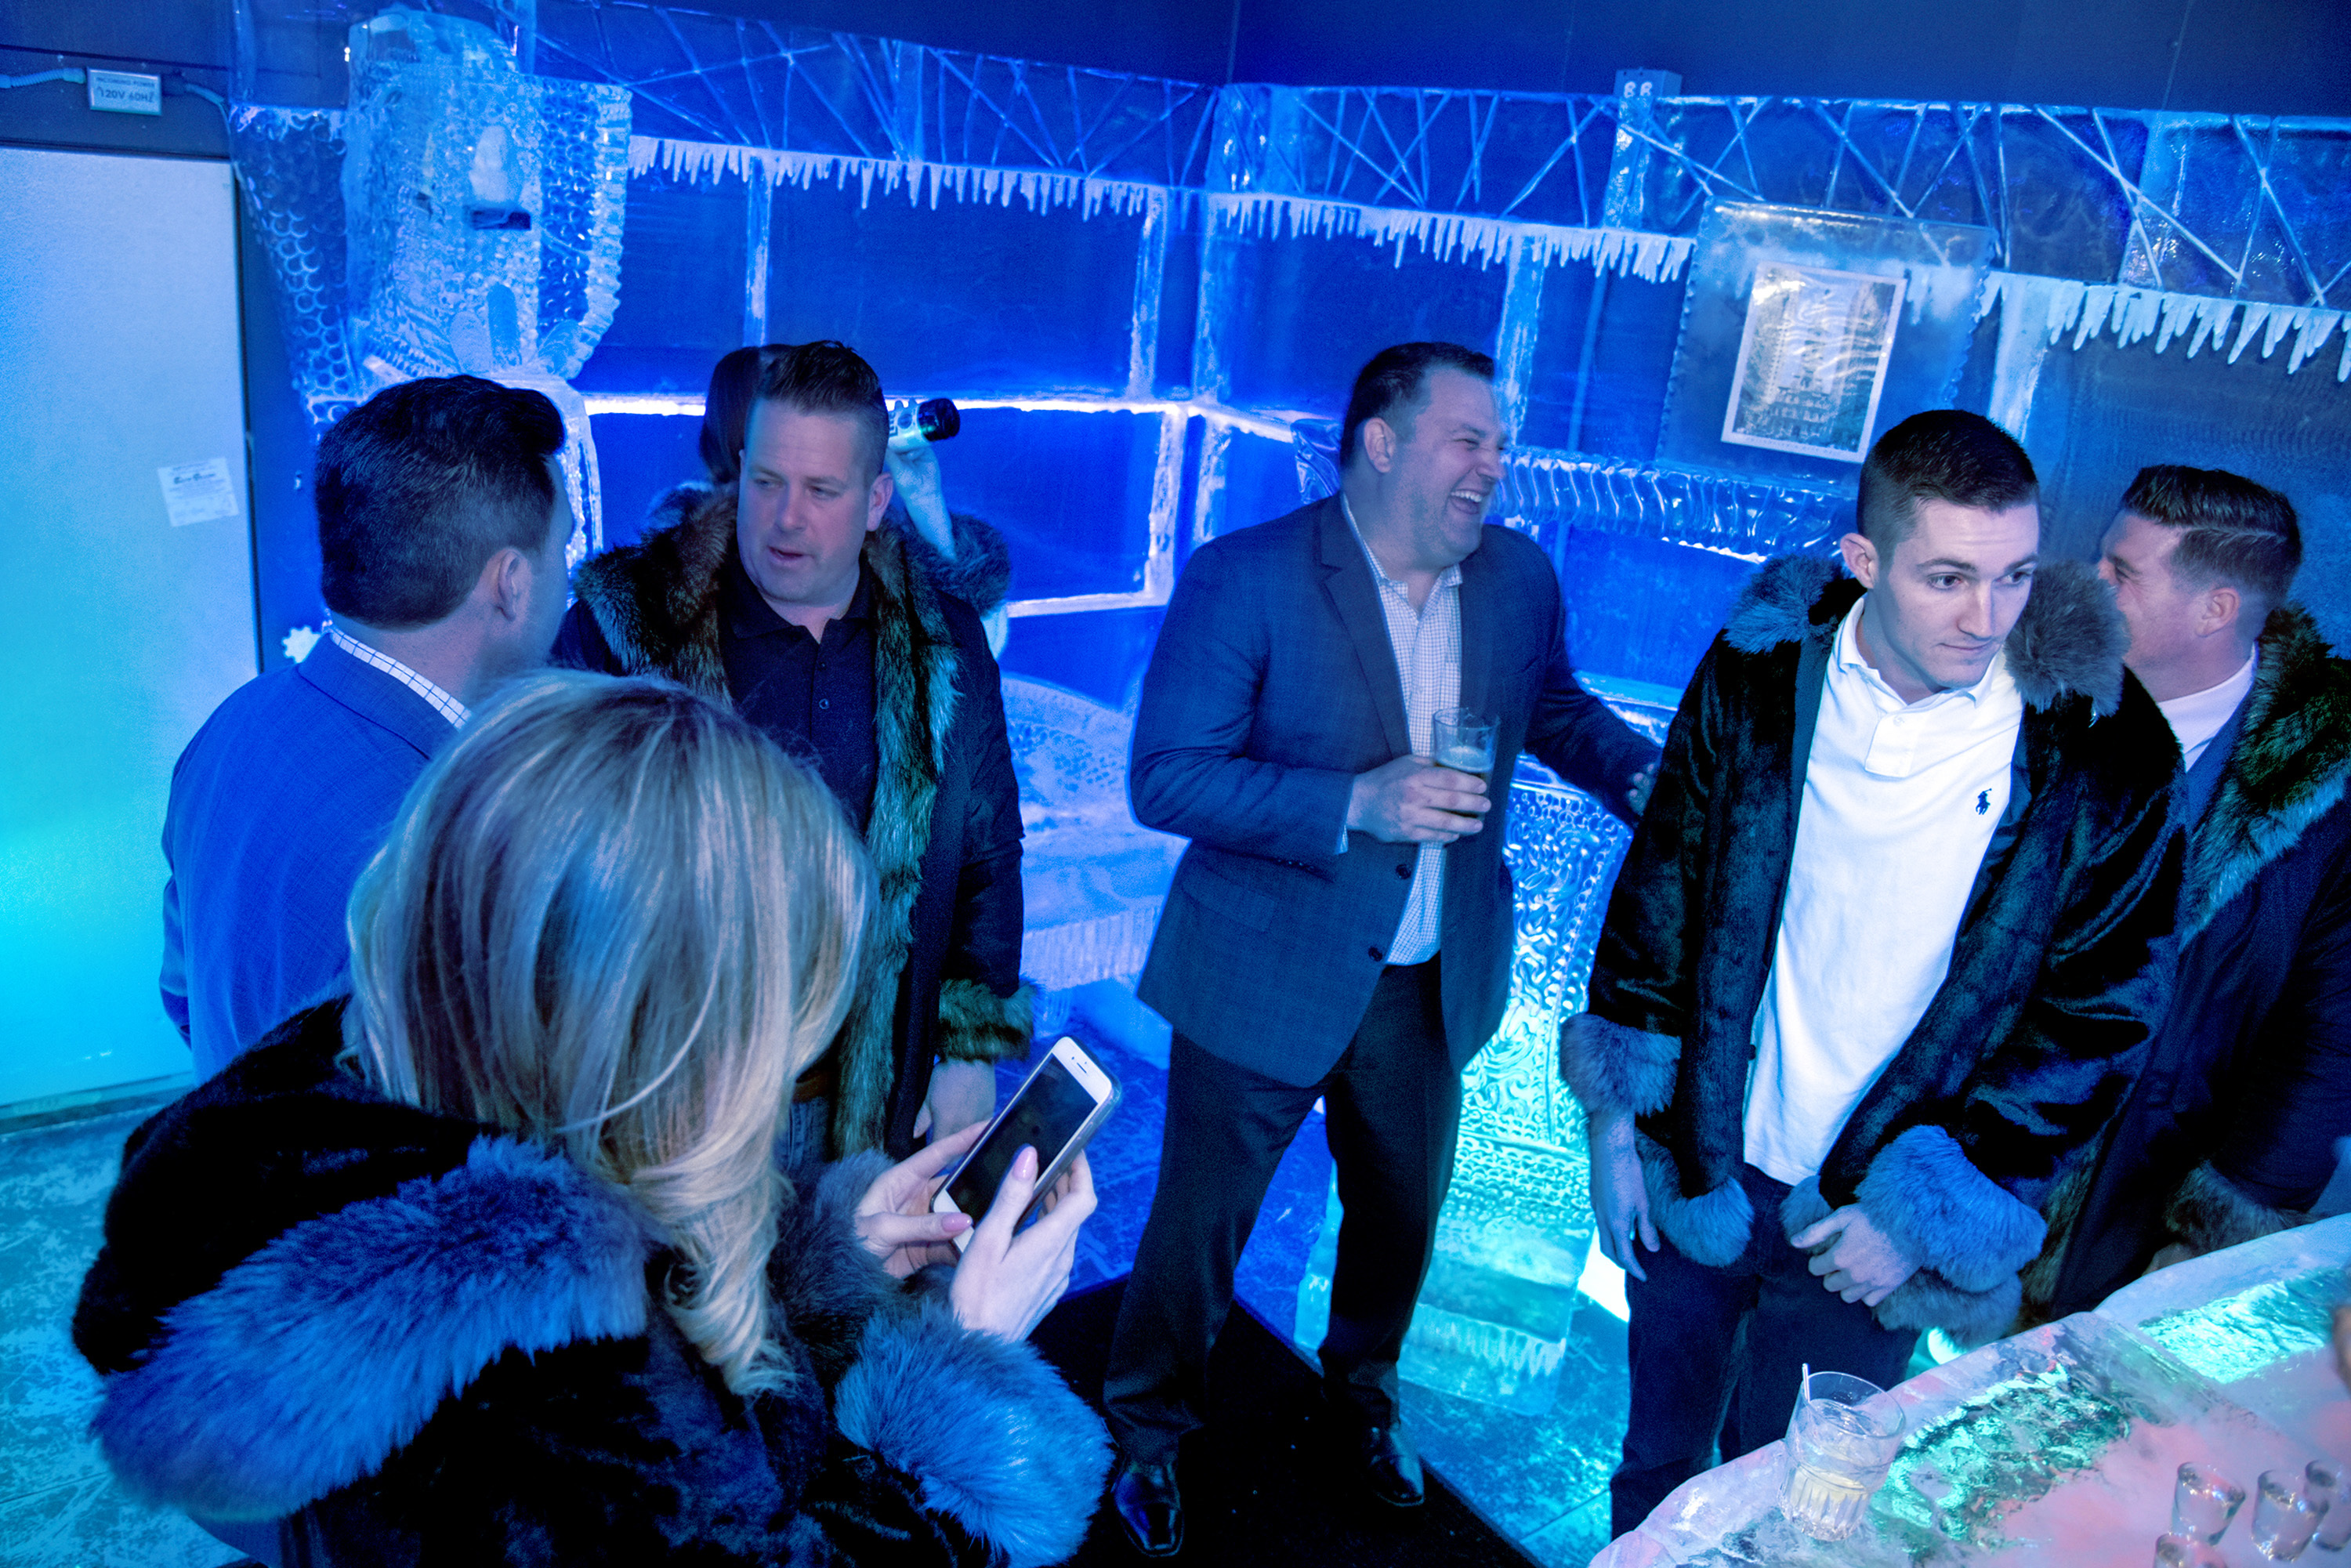 In Clubhouse Sports Lounge´s 17-degree chilled ice room, enjoy drinks while donning a faux fur coat.